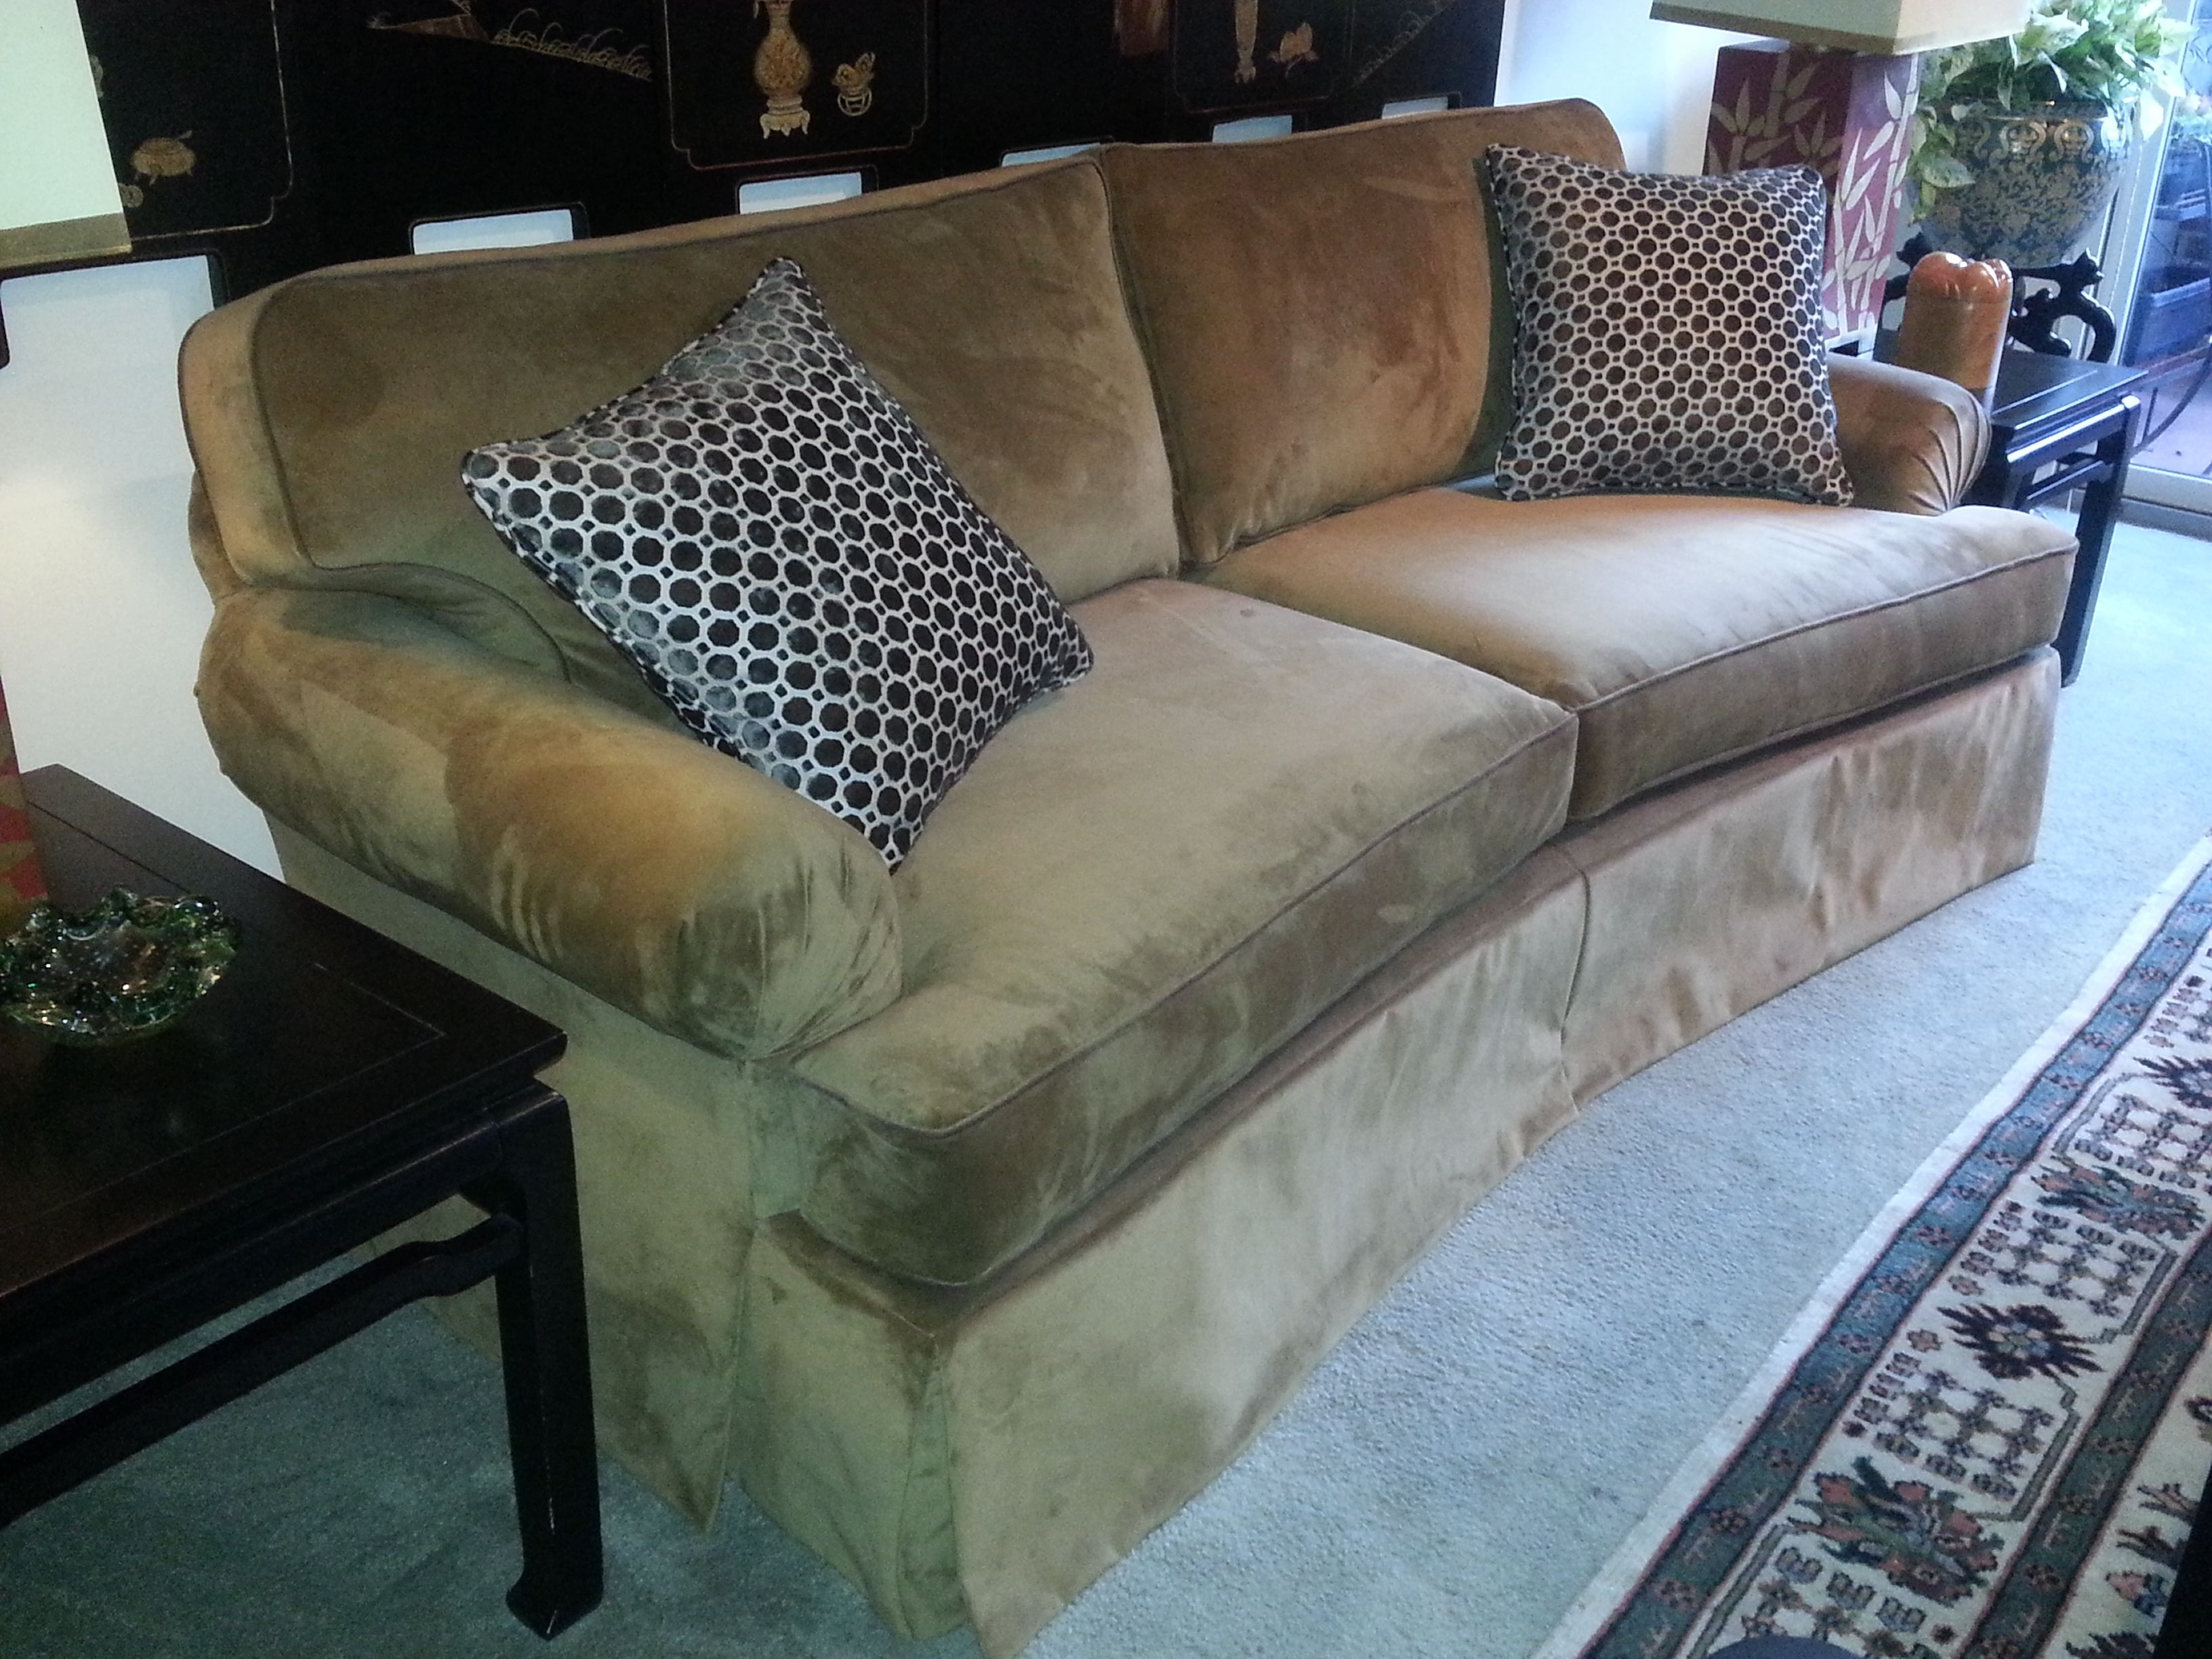 Toffee Velvet Upholstery And Chocolate Geo Pillows Upholstery Decor Upholster [ 2448 x 3264 Pixel ]